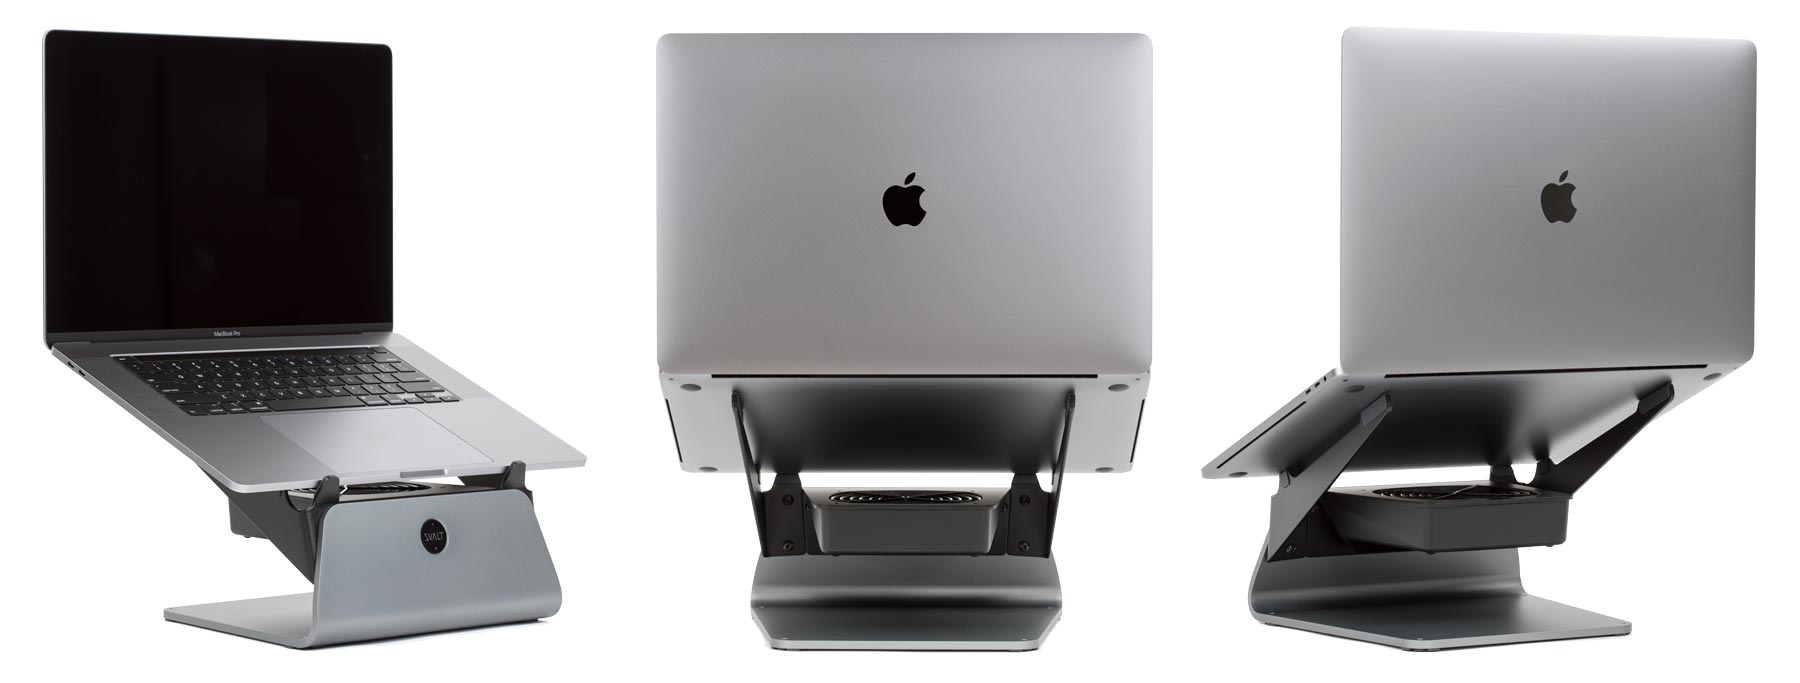 SVALT Cooling Stand model S Pro with 16-inch MacBook Pro